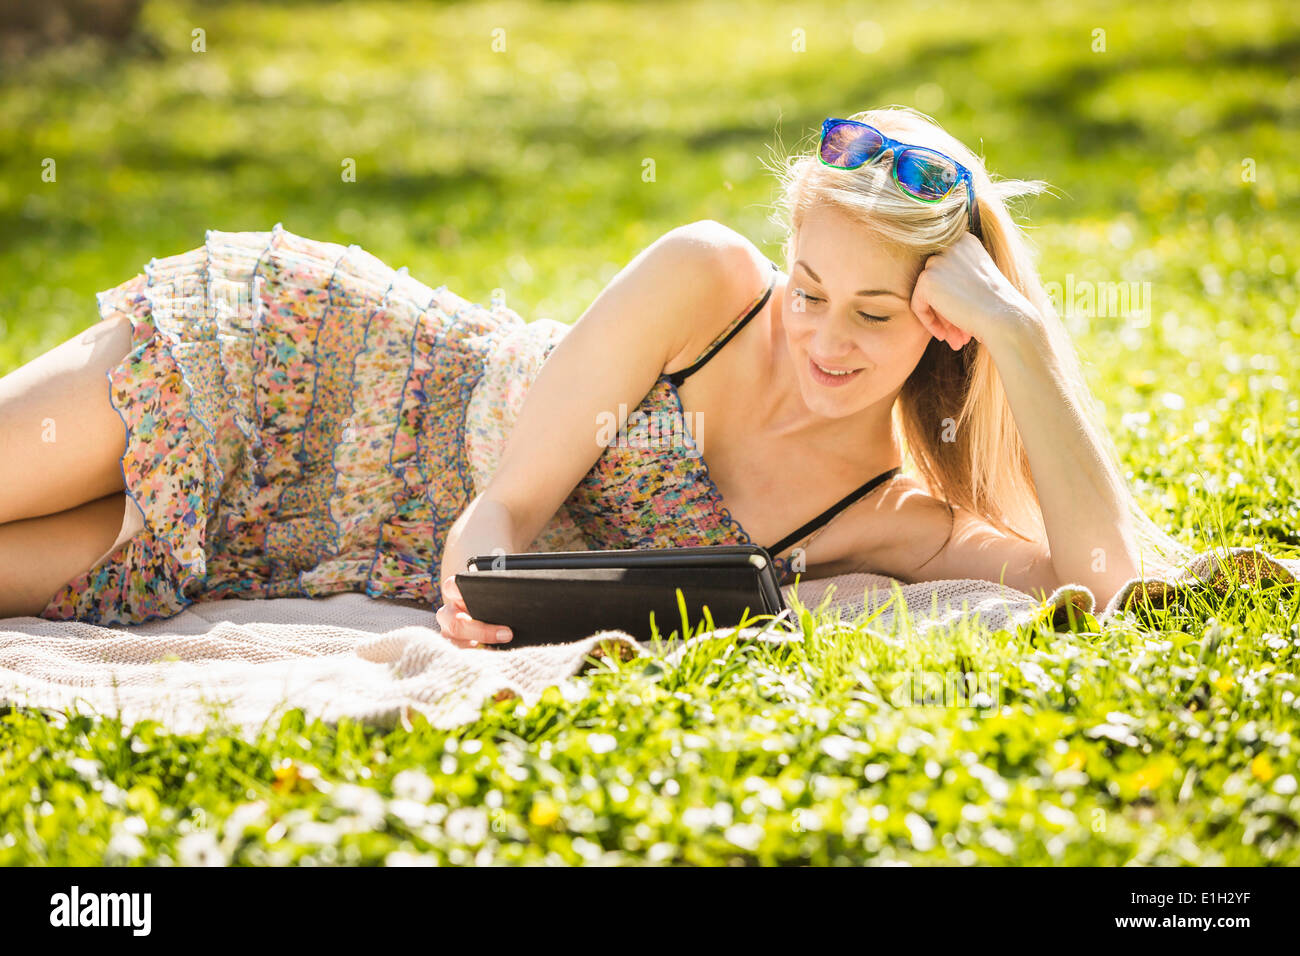 Young woman lying in forest looking at digital tablet - Stock Image